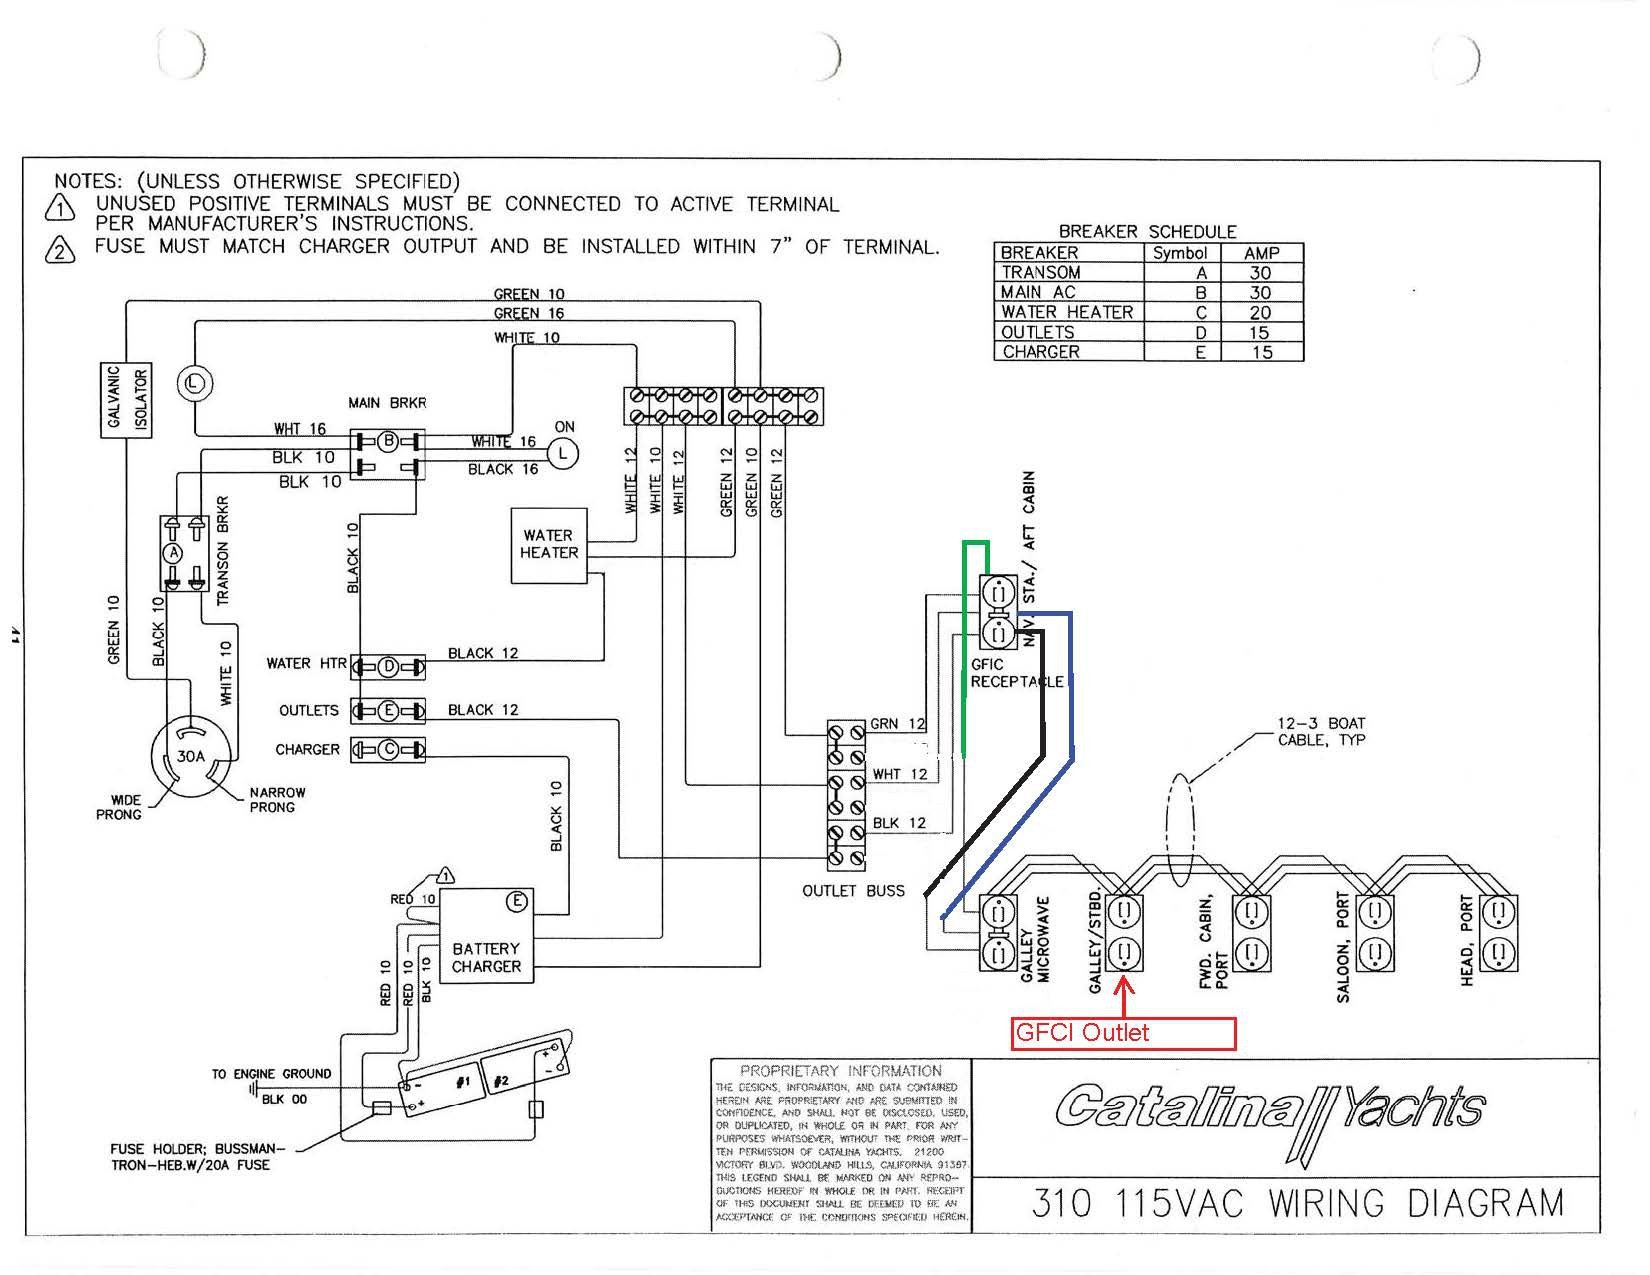 Bremas 220 Volt Wiring Diagram Expert Category Circuit Switch Rotary Boat Lift Bbremas Electrical Diagrams Rh Wiringforall Today